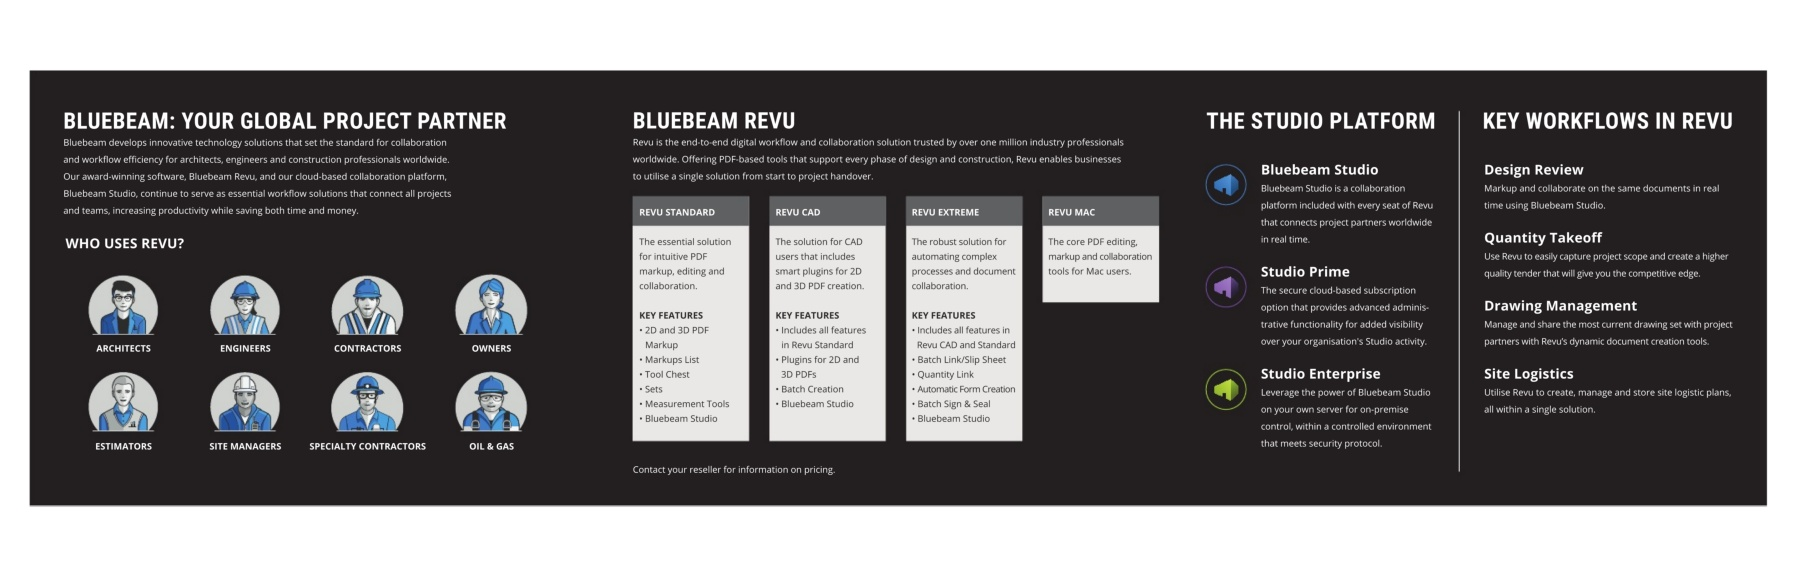 Blueneam-new-brochure-2018 Pages 1 - 2 - Text Version | AnyFlip